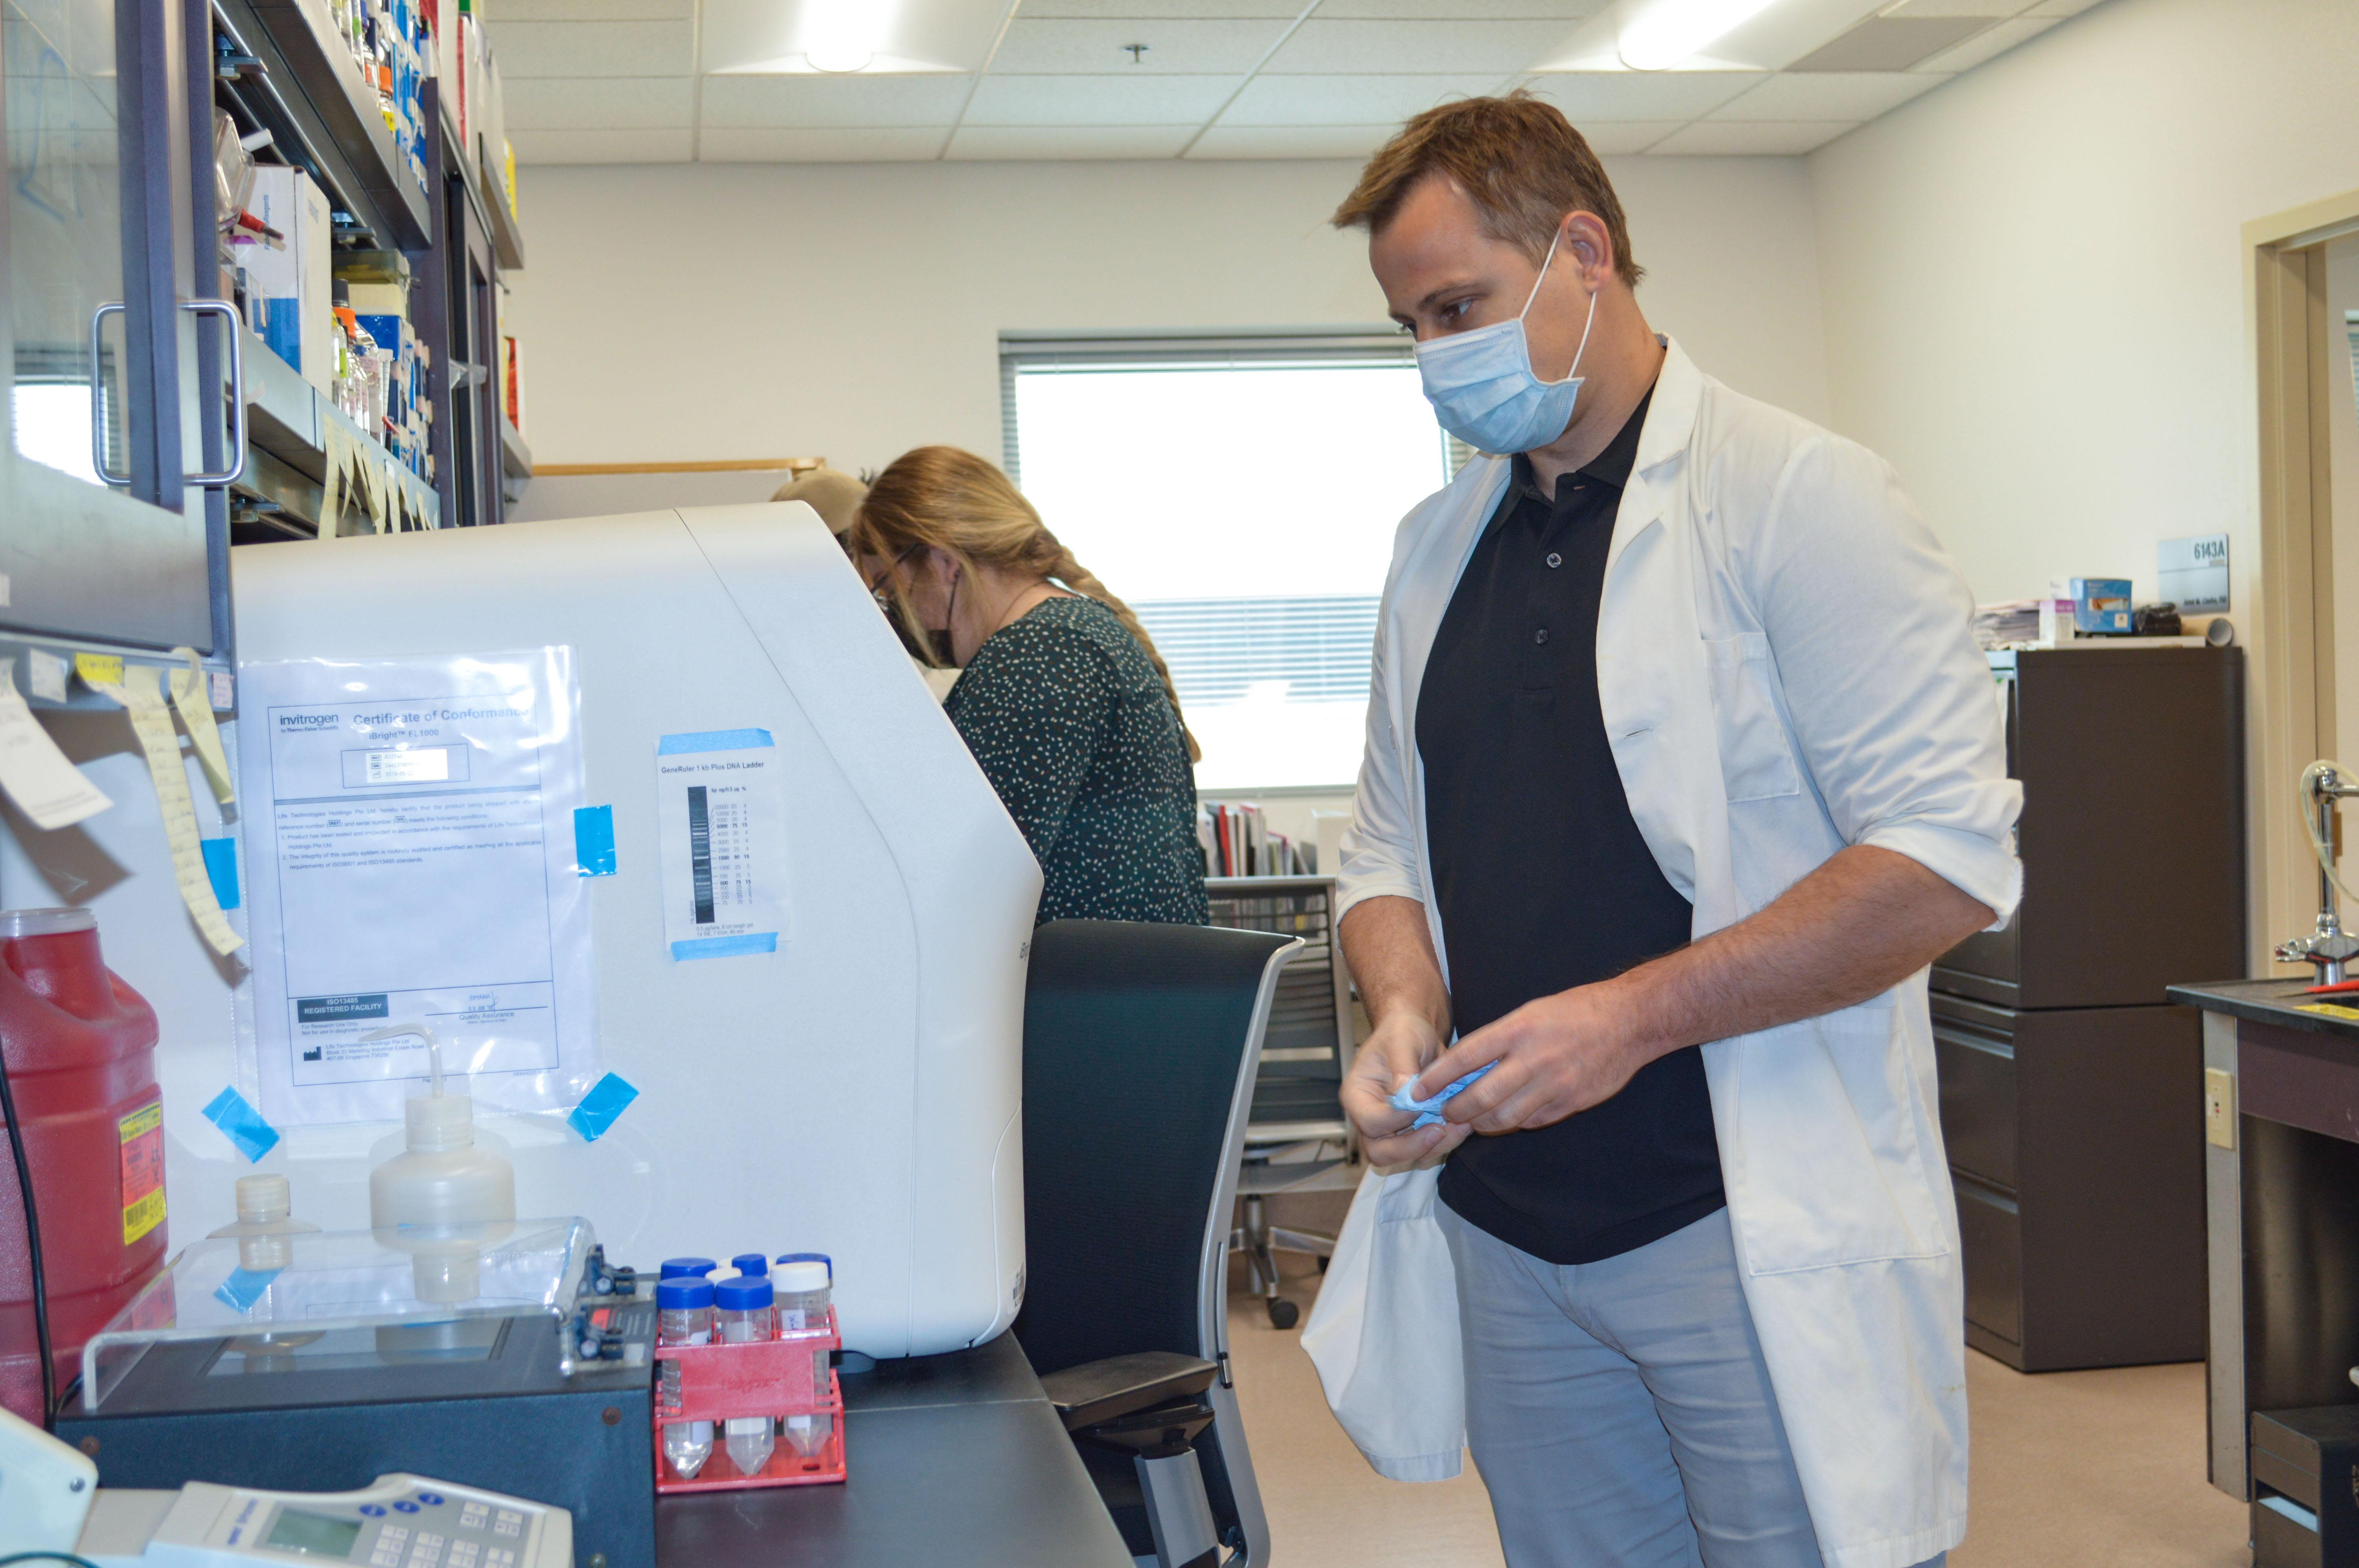 Jared Churko, PhD, assistant professor of cellular and molecular medicine in the College of Medicine – Tucson and director of the University of Arizona induced Pluripotent Stem Cell (iPSC) Core, used stem cells to evaluate the impact of blood pressure medications on SARS-CoV-2.